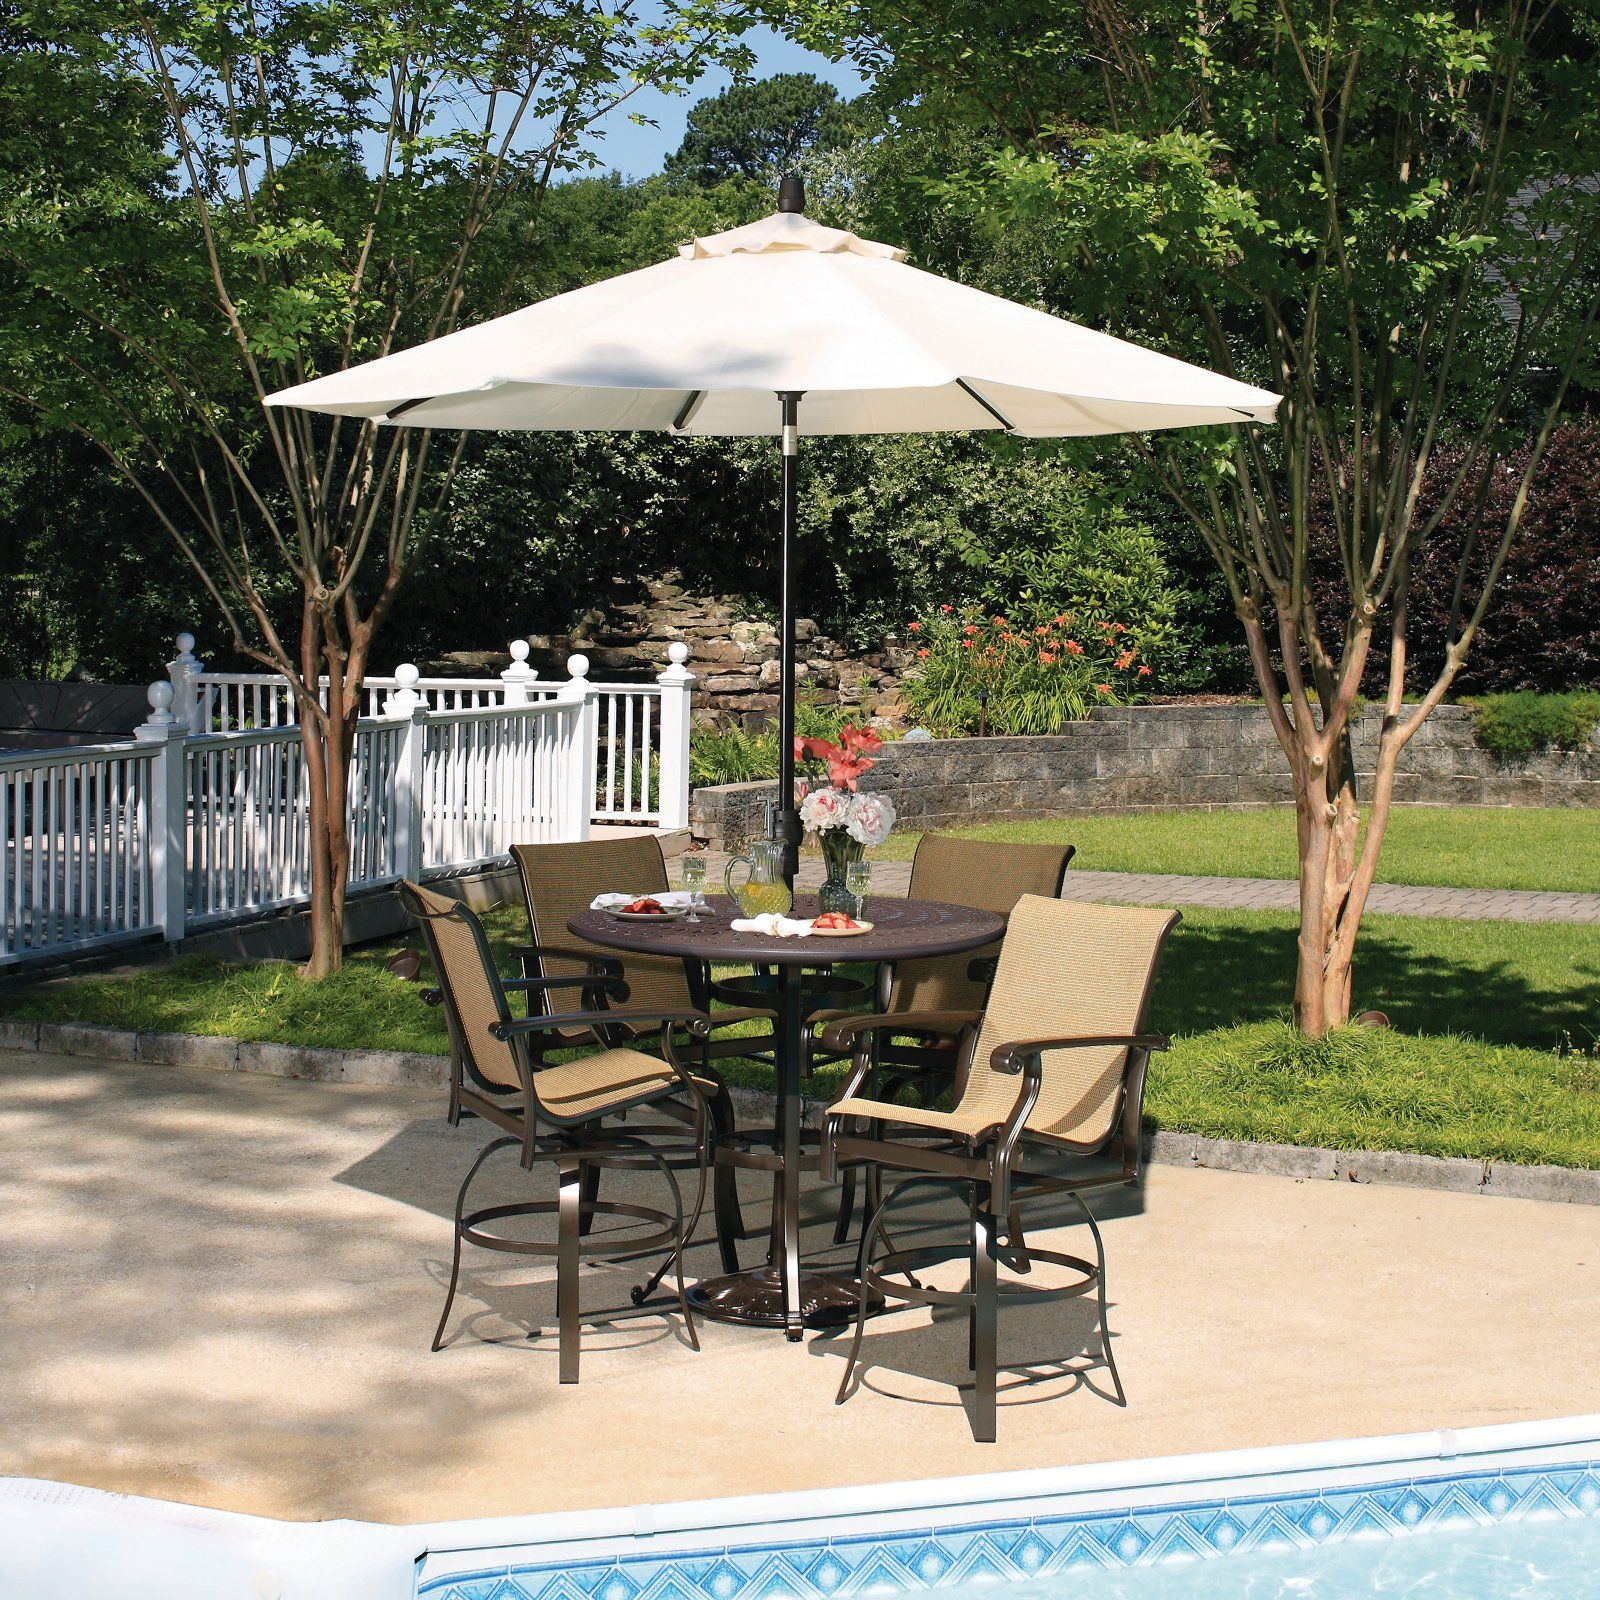 Patio Furniture Sets Bar Height Among White Umbrella Furniture